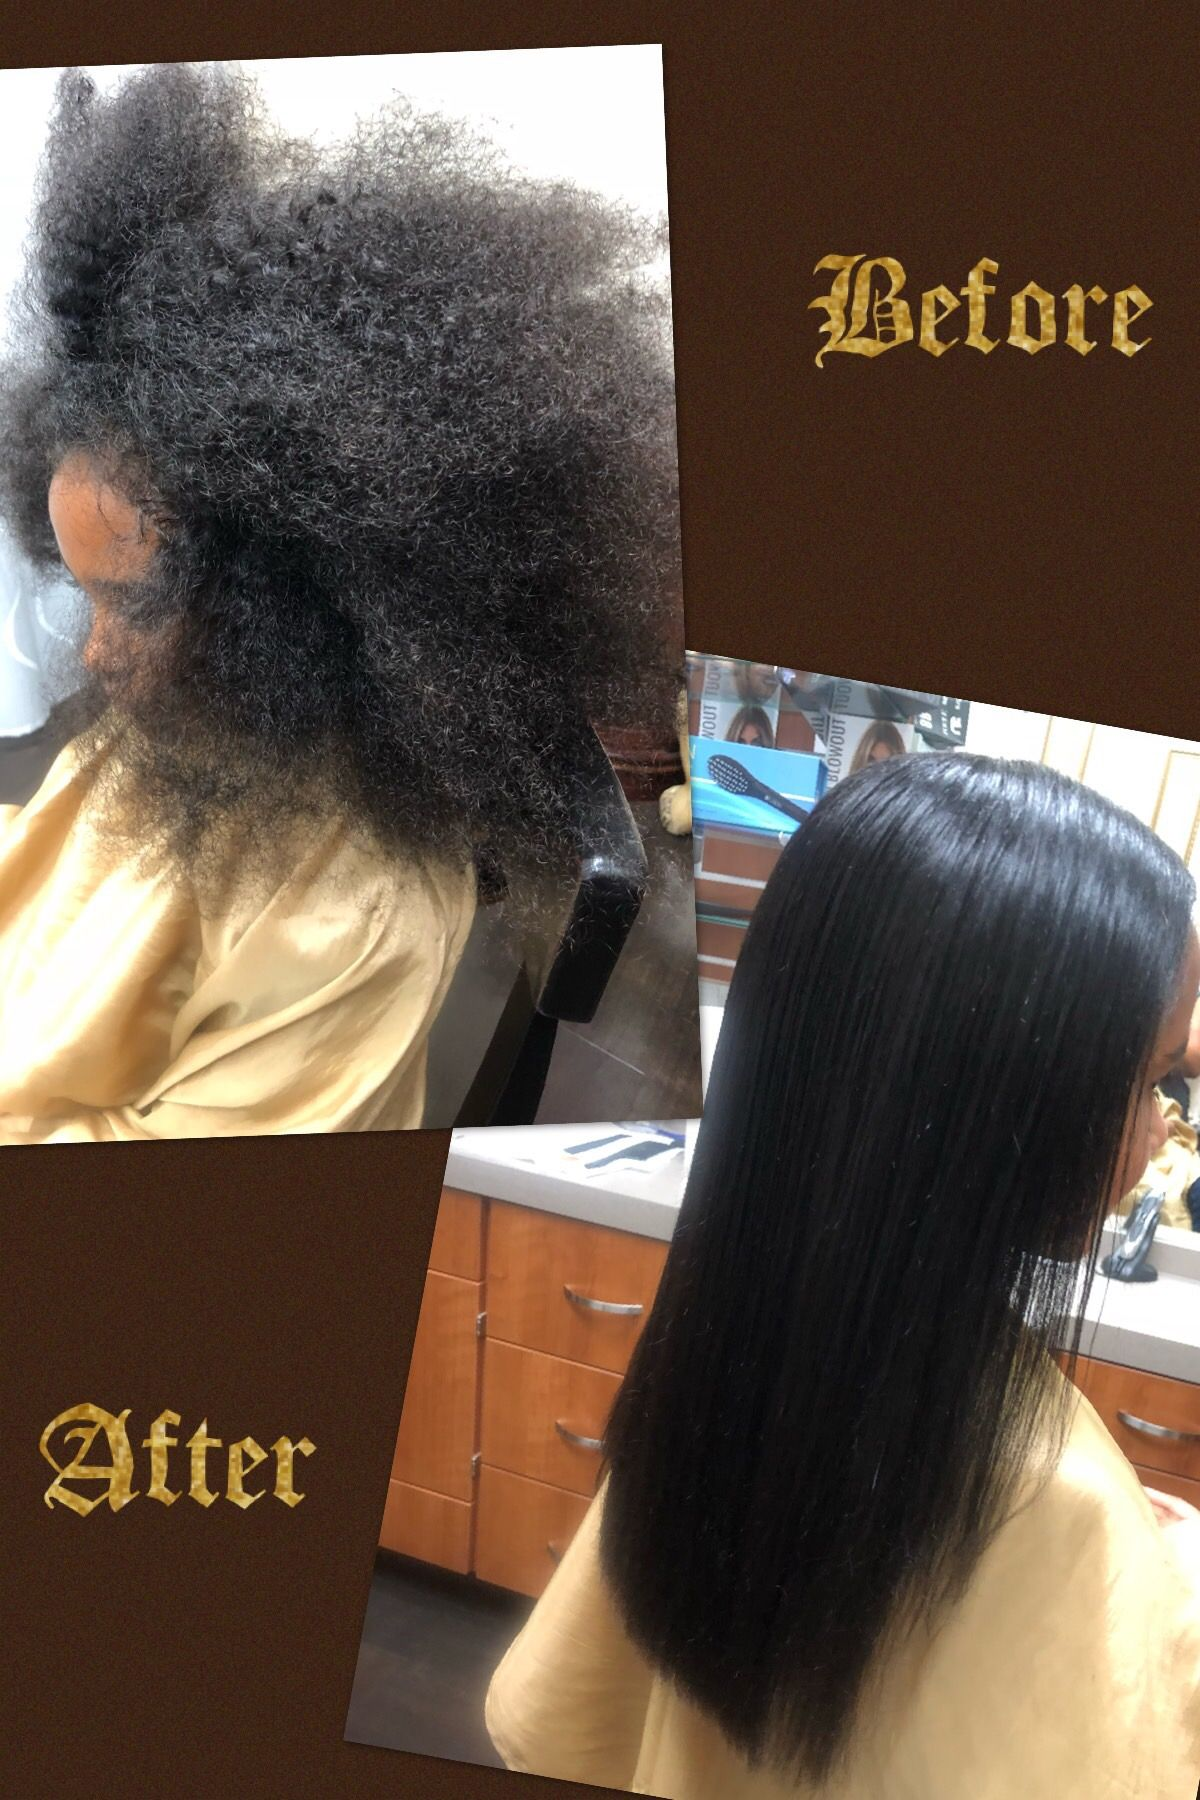 Pin By Kreations Hair Salon On Web Page Http Www Kreastions Com Facebook Https Www Facebook Com Tracikreations Brazilian Blowout Hair Salon Hair